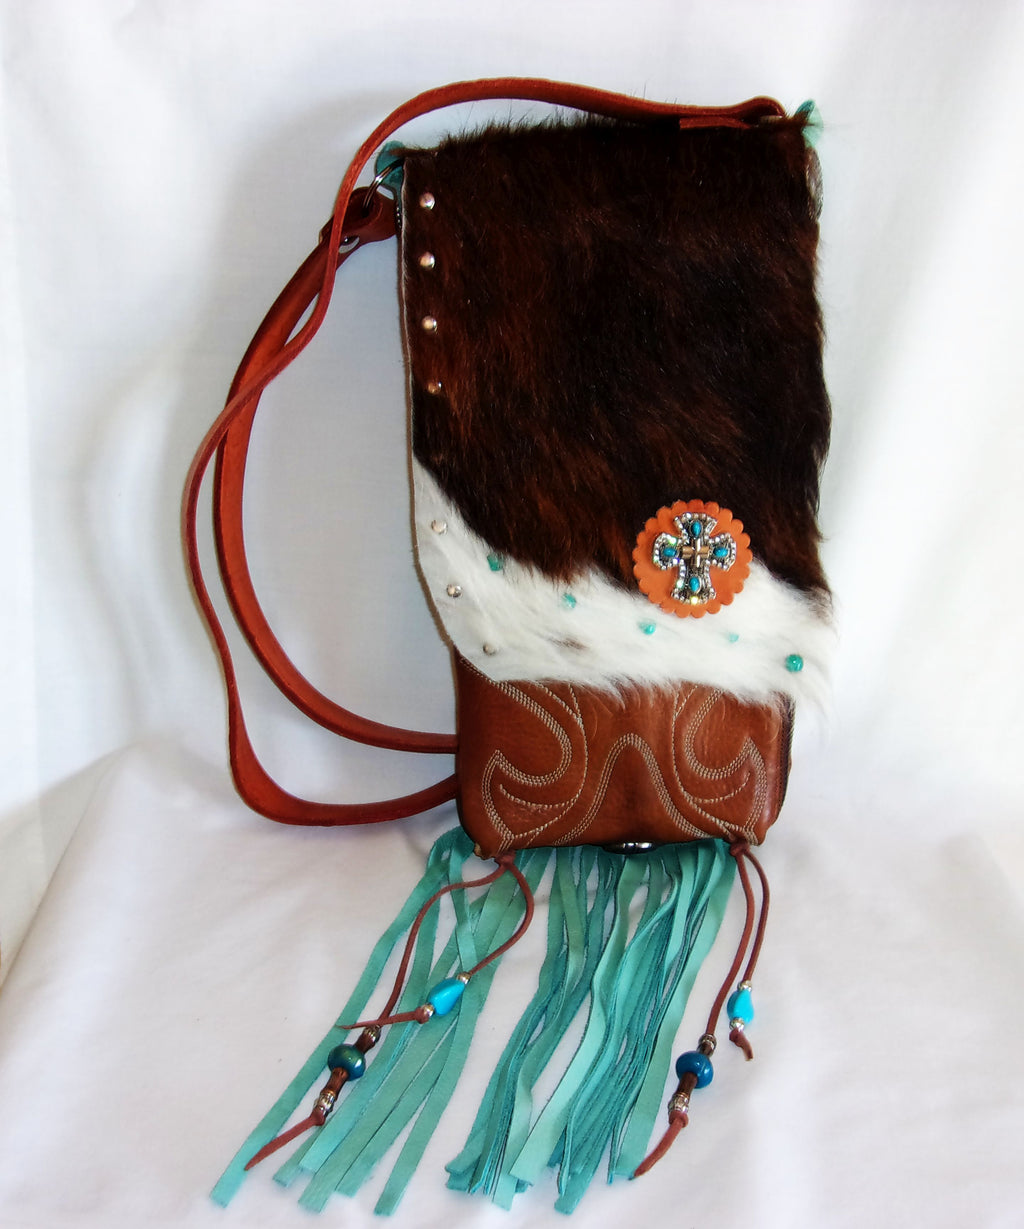 Hair on Hide Bag - Cowboy Boot Purse - Cowhide Purse - Handcrafted Crossbody Purse HH32